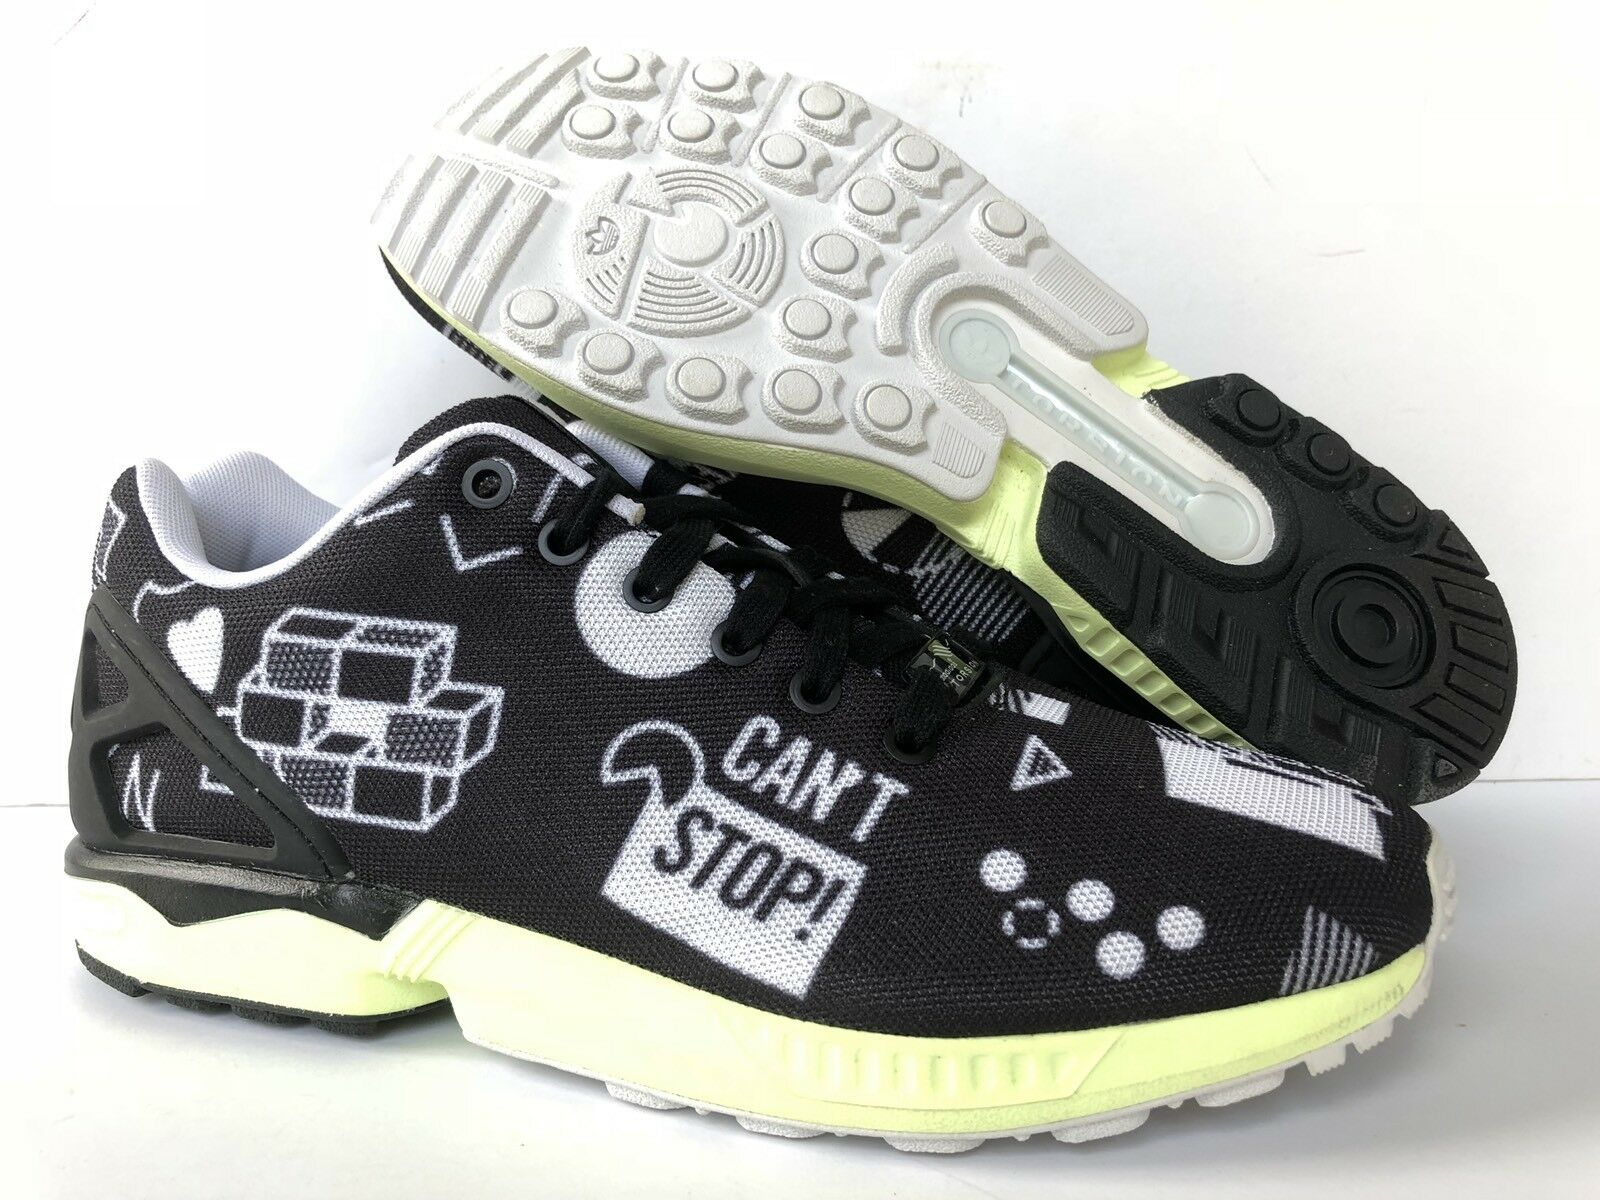 ADIDAS TORSION ZX FLUX  BLACK/WHITE Price reduction US MENS Price reduction Wild casual shoes